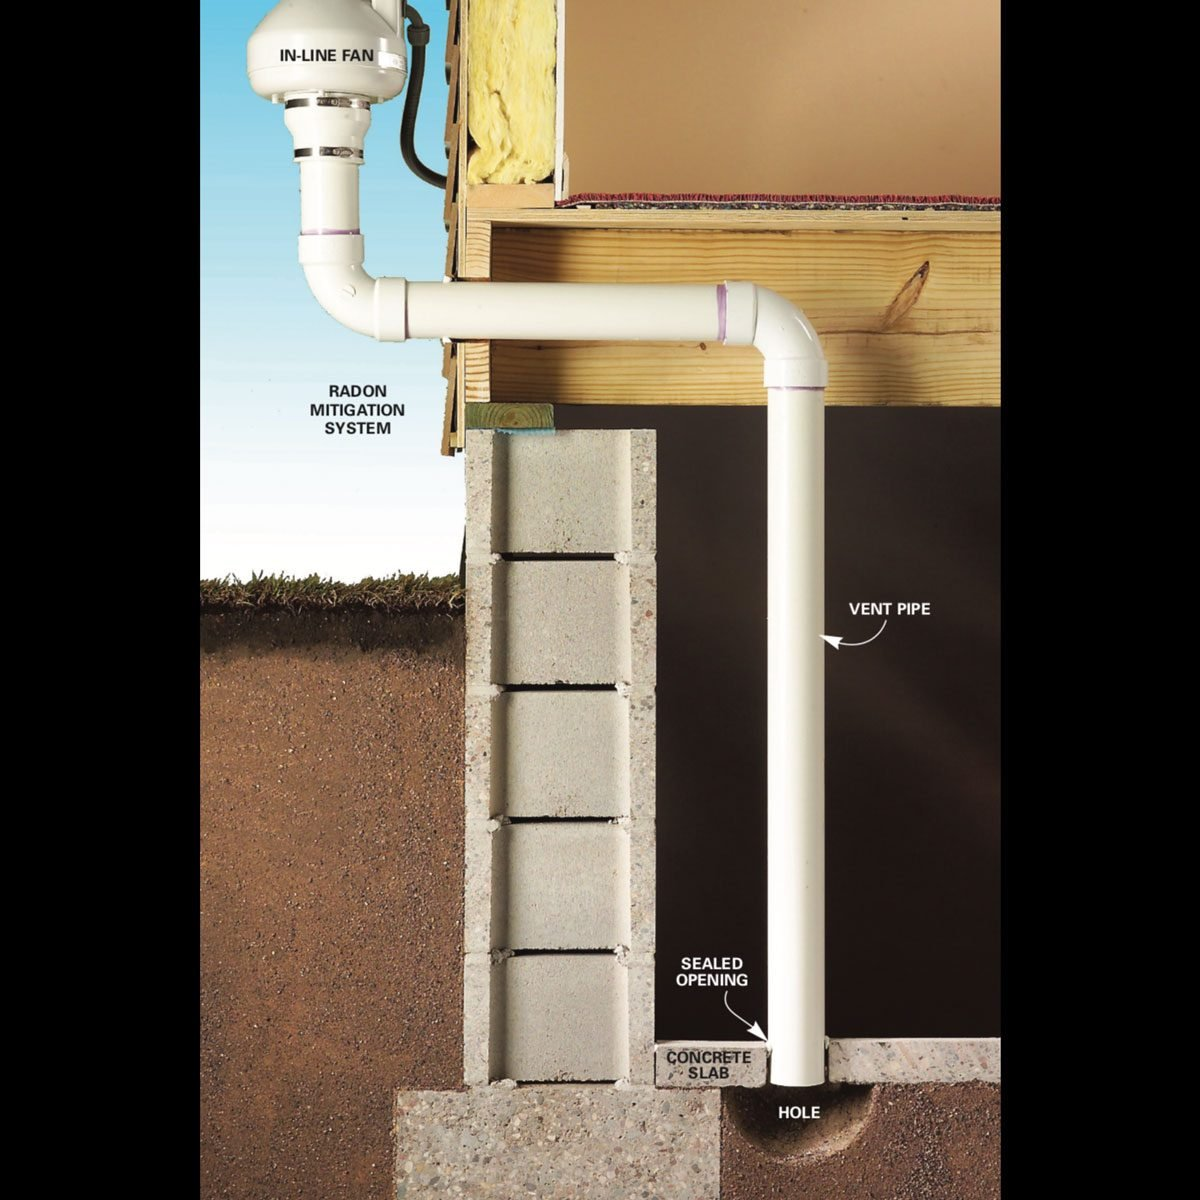 Radon Gas Remediation The Best Radon Mitigation Systems